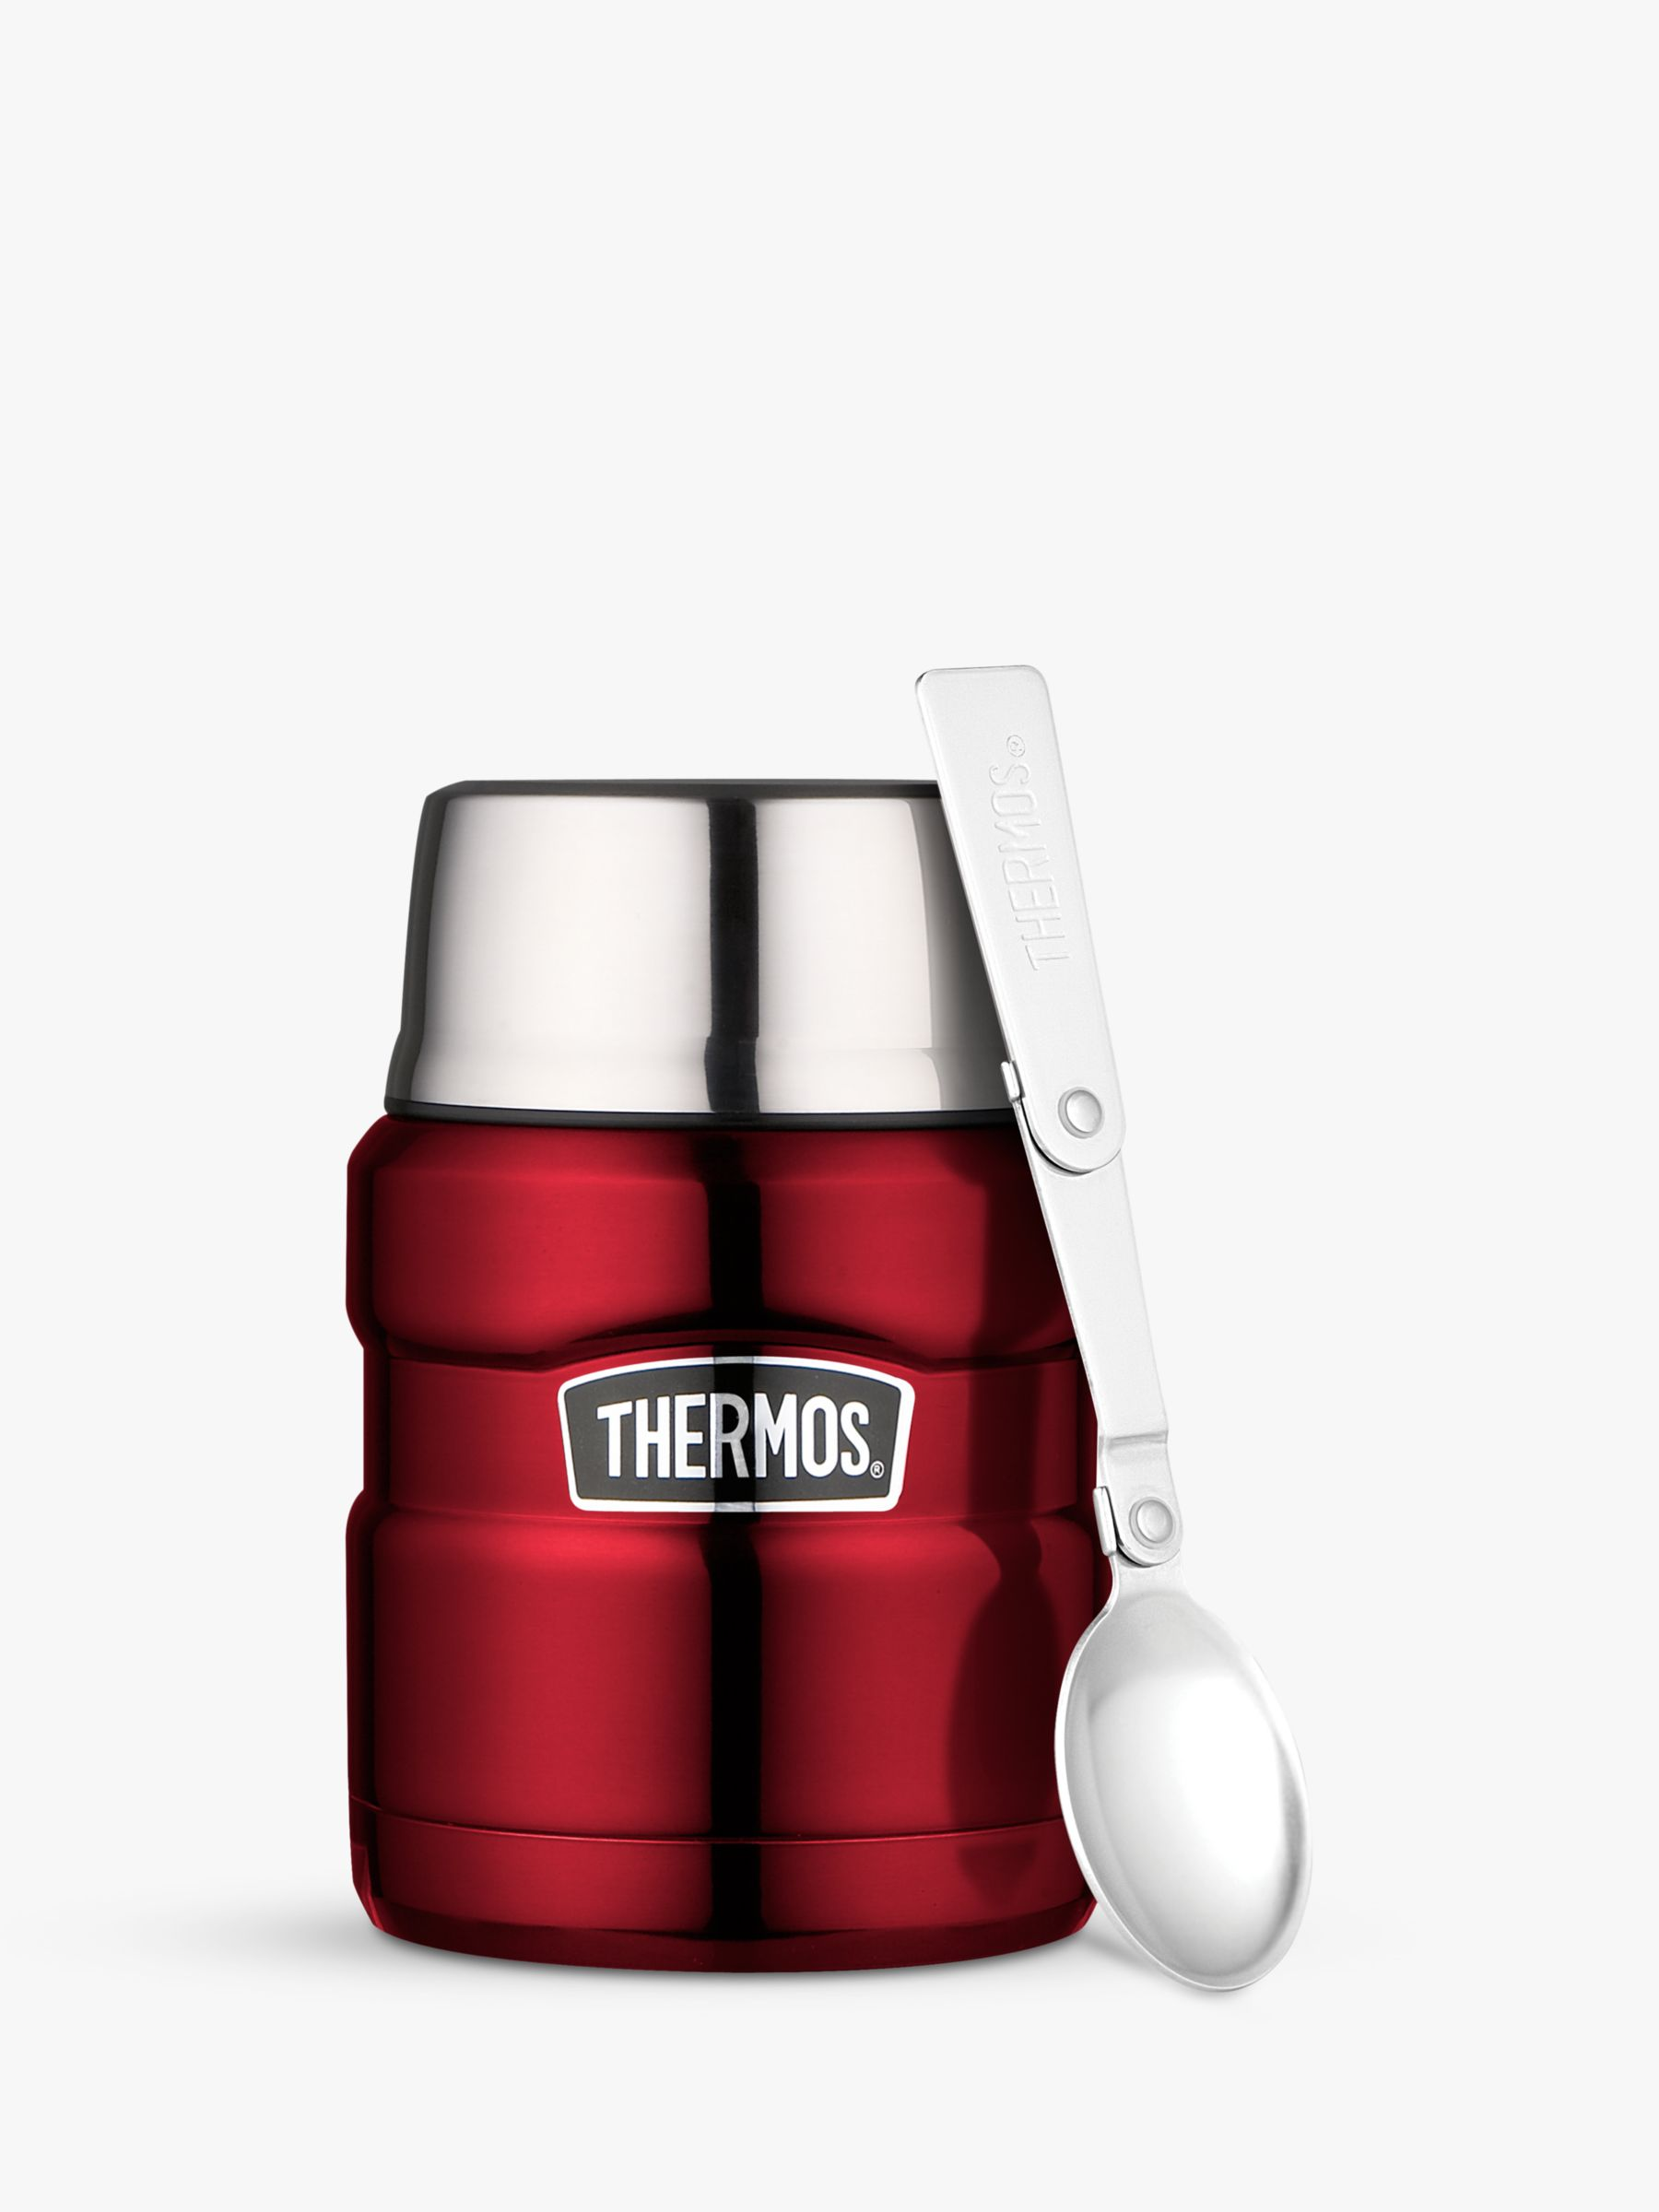 Thermos Thermos King Food Flask, Stainless Steel, 470ml